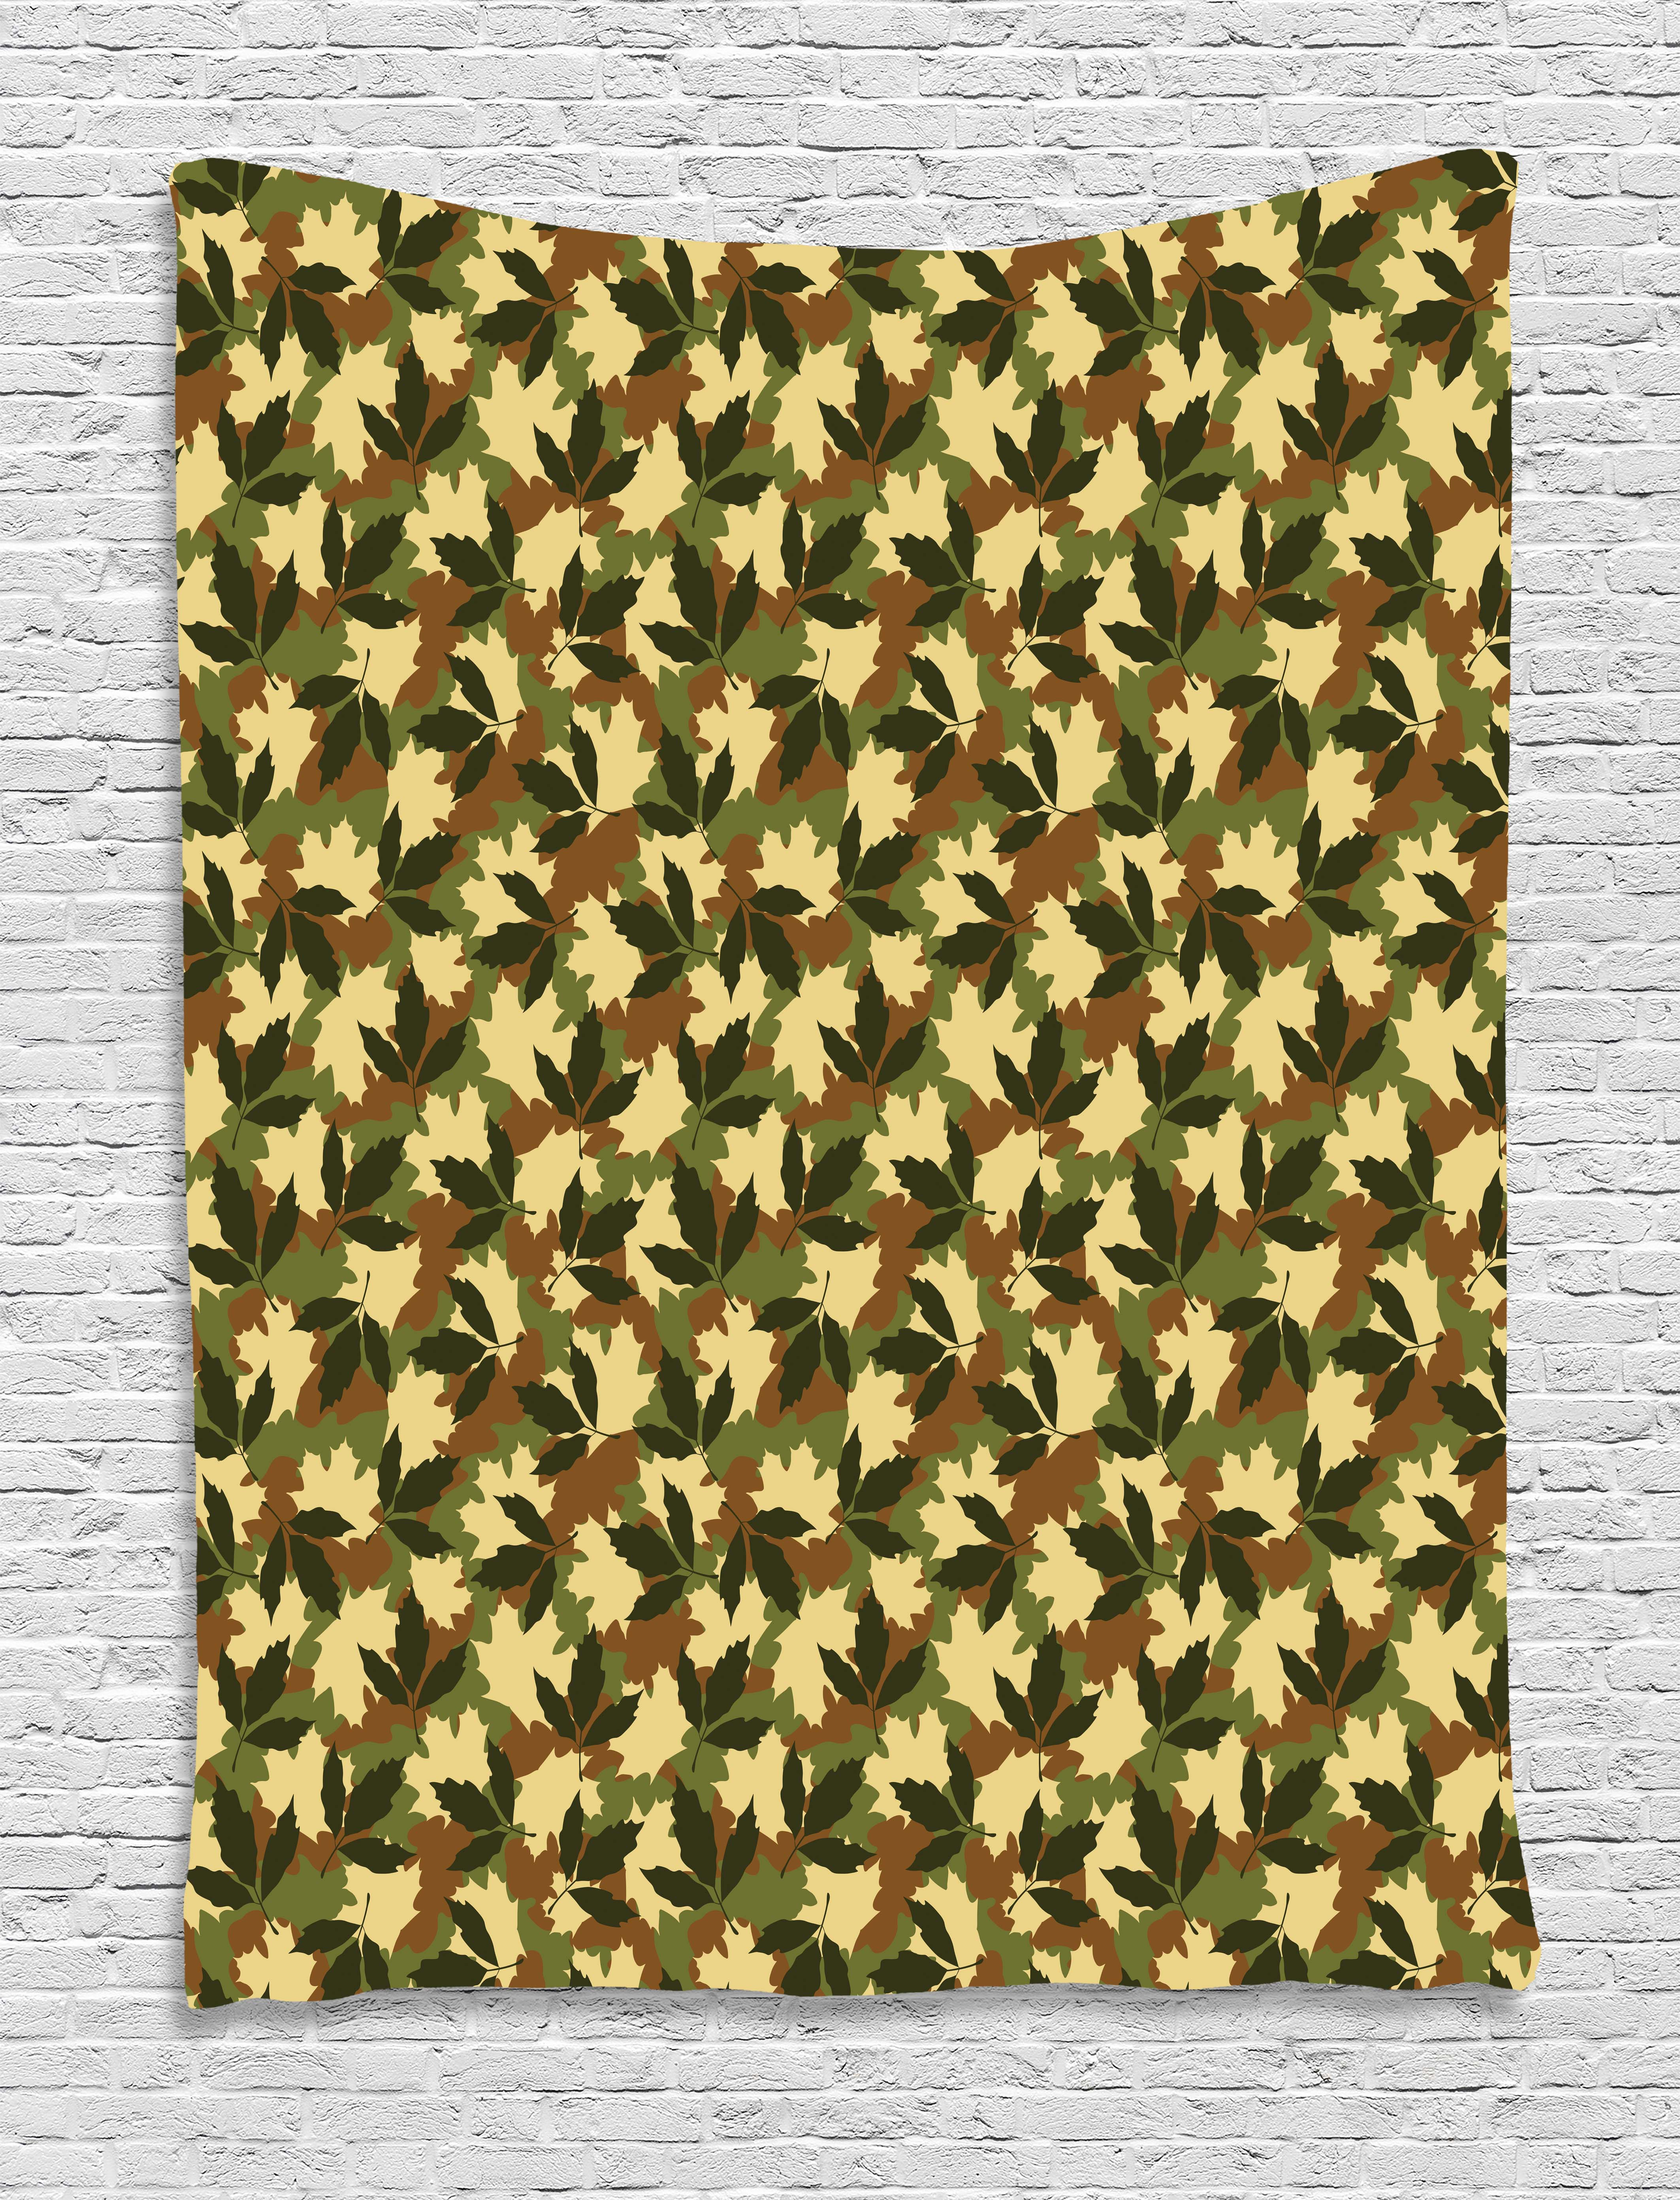 Forest Green Tapestry, Leafage Pattern With Military Army Theme Camo Style  Forest Woodland Hiding,